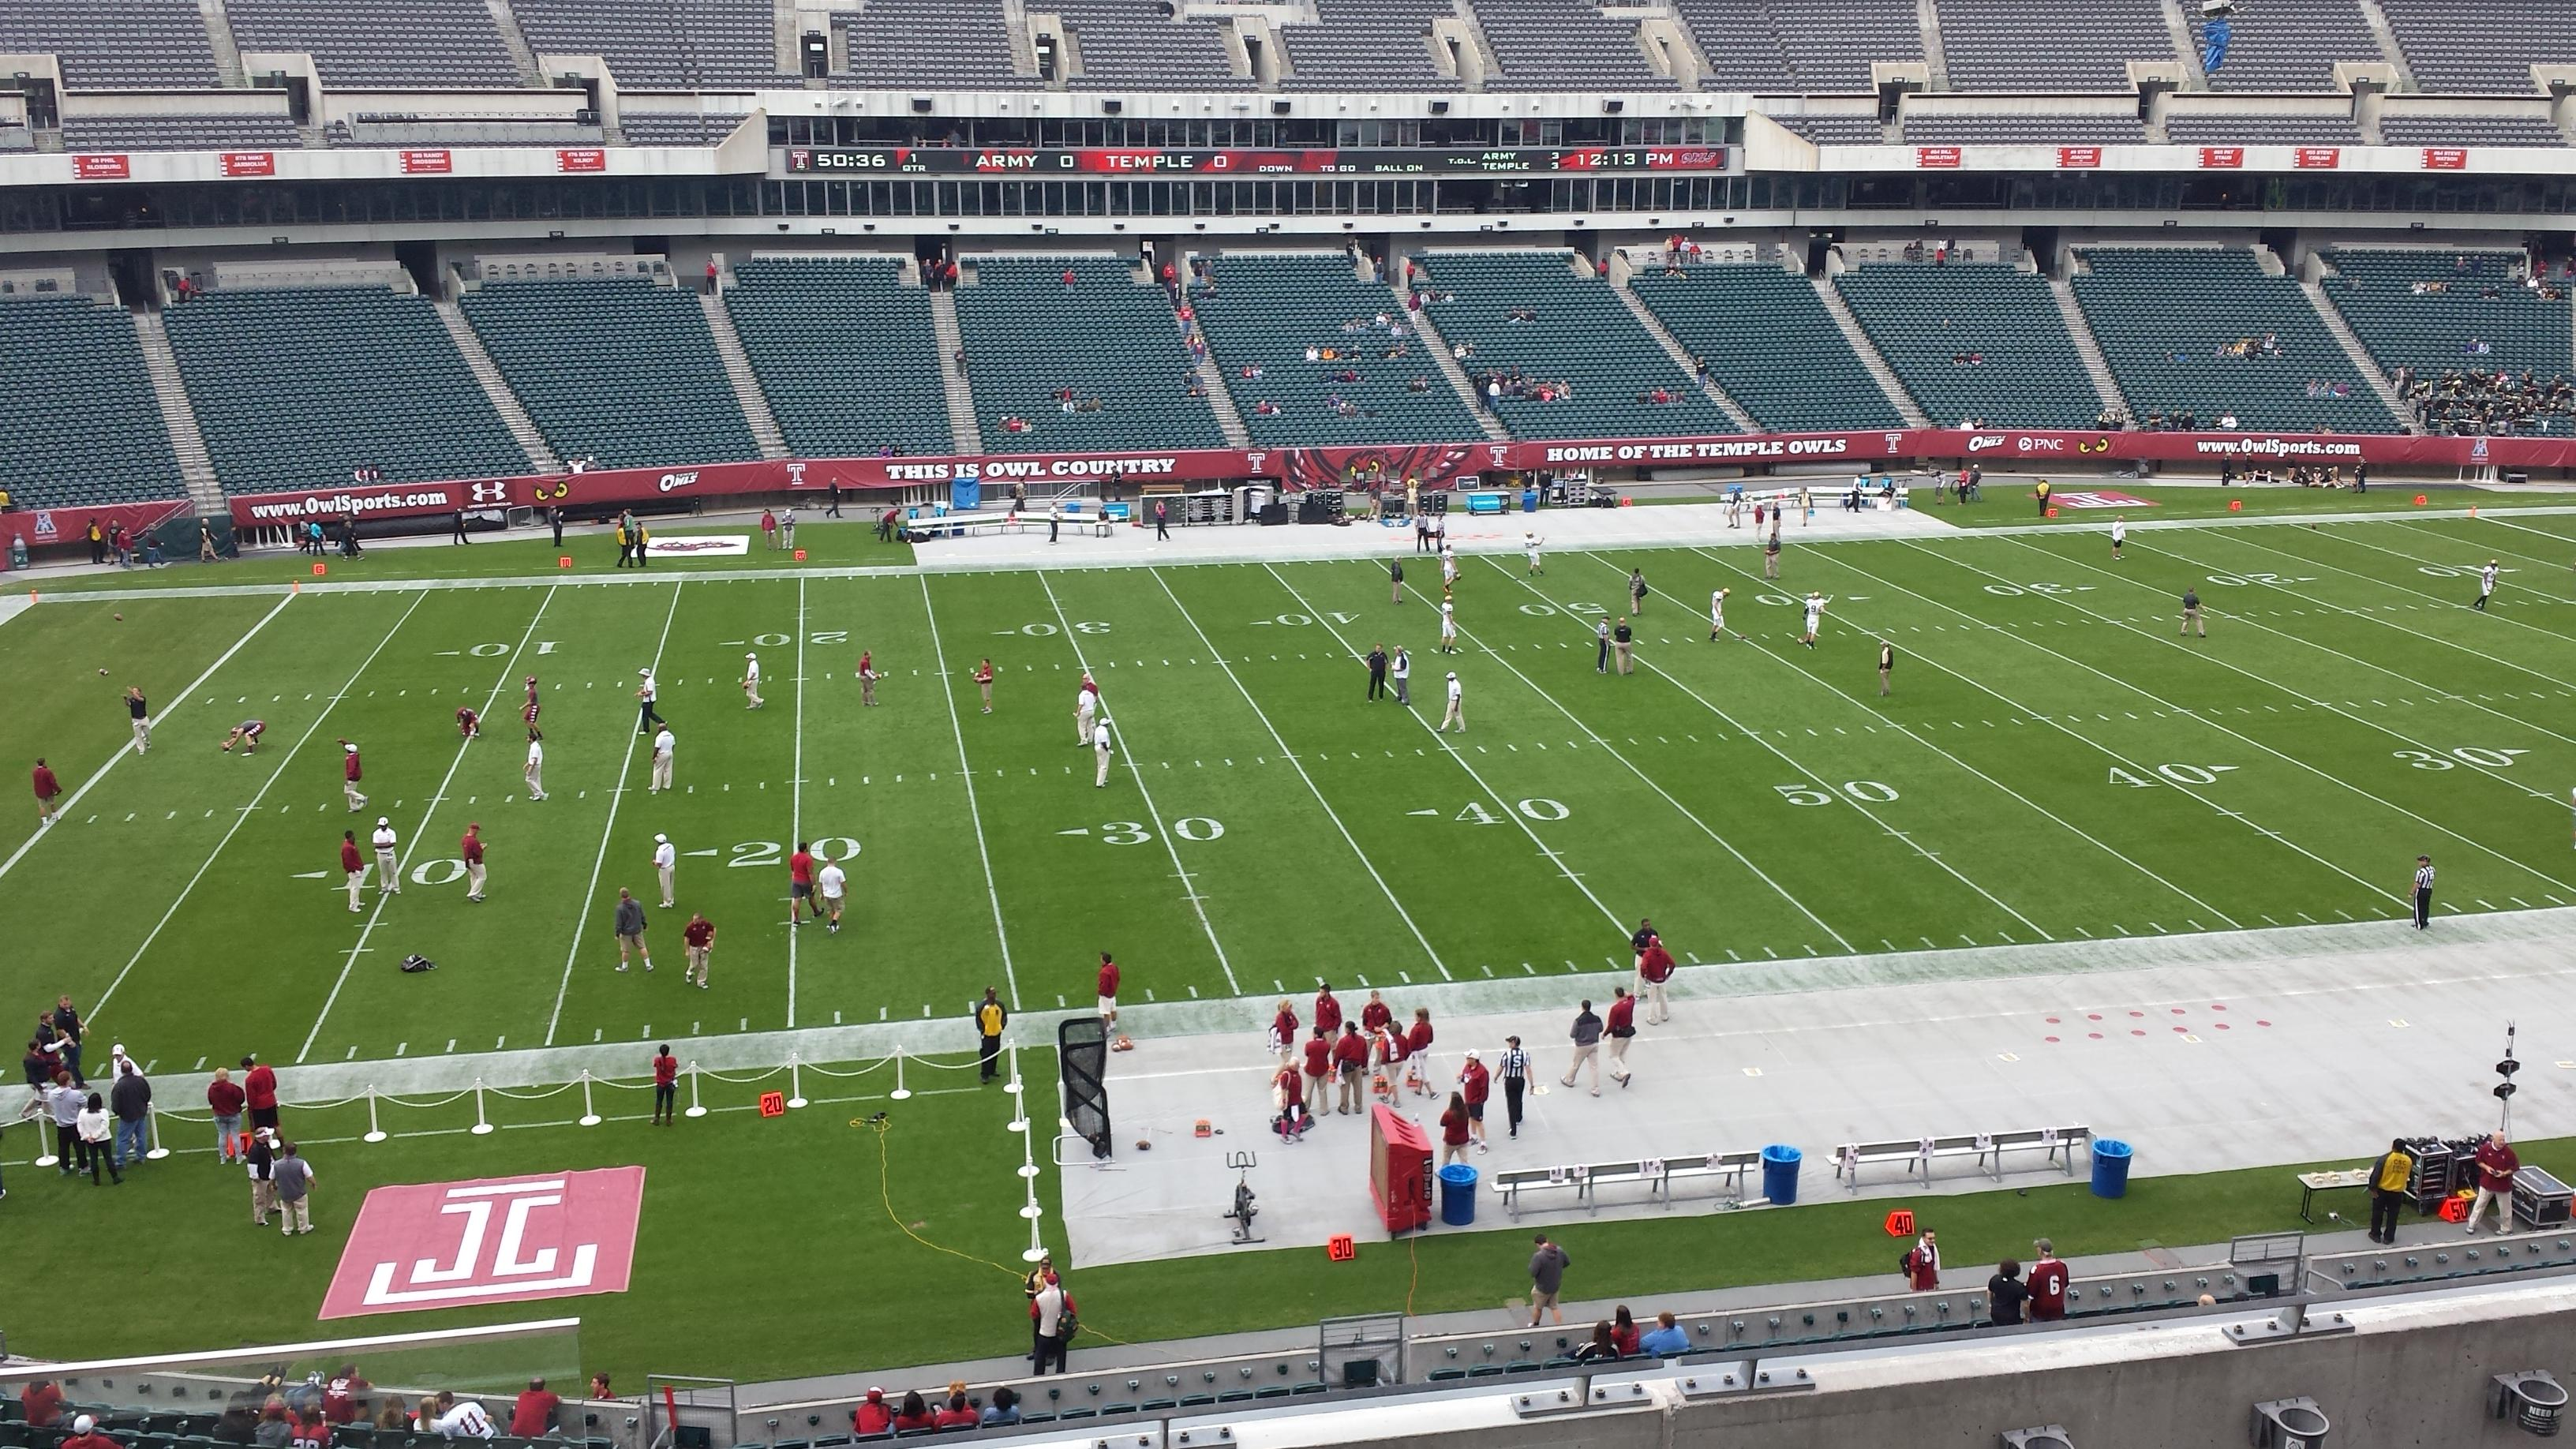 Lincoln Financial Field Section C20 Row 4 Seat 22 Temple